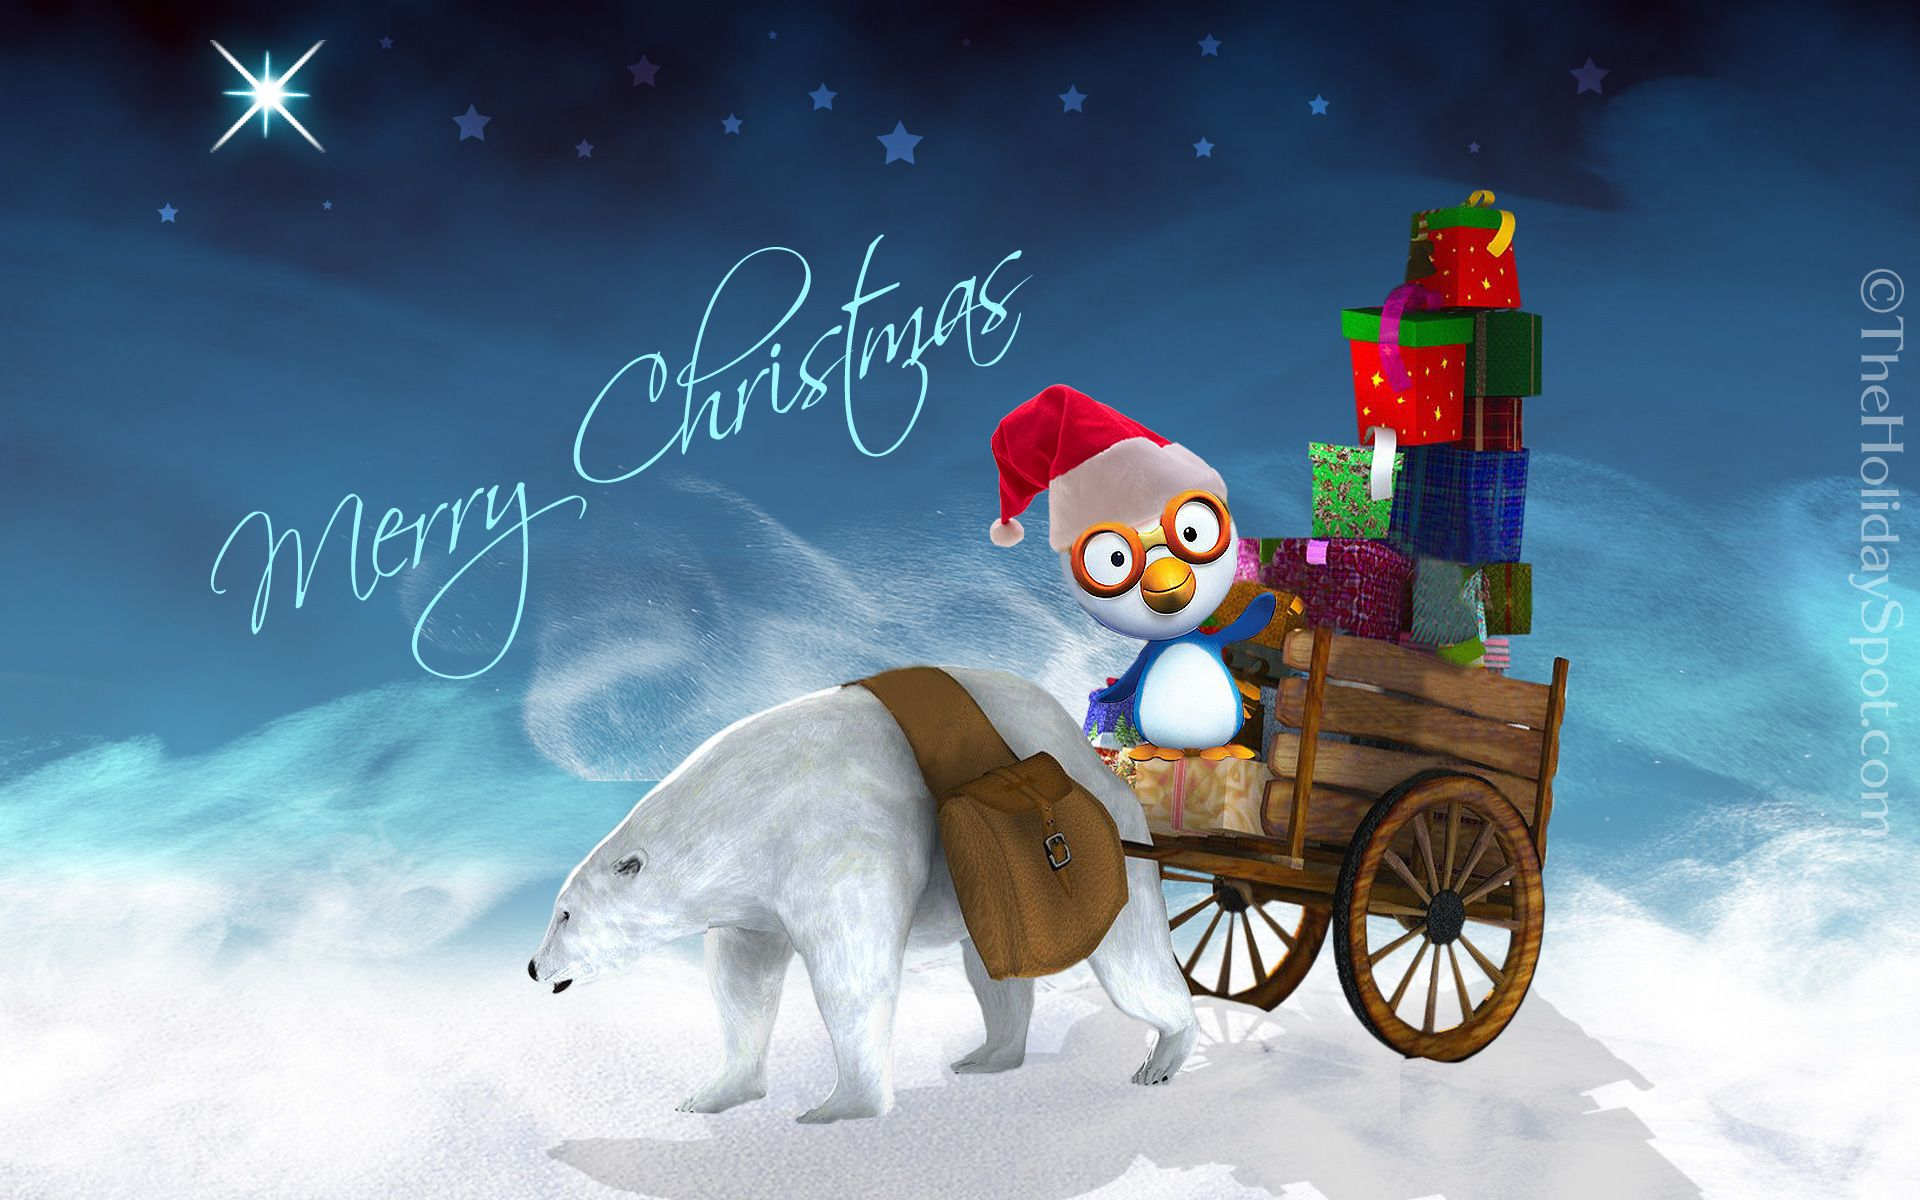 Merry Christmas Wallpapers | Merry Christmas | Pinterest | Merry ...